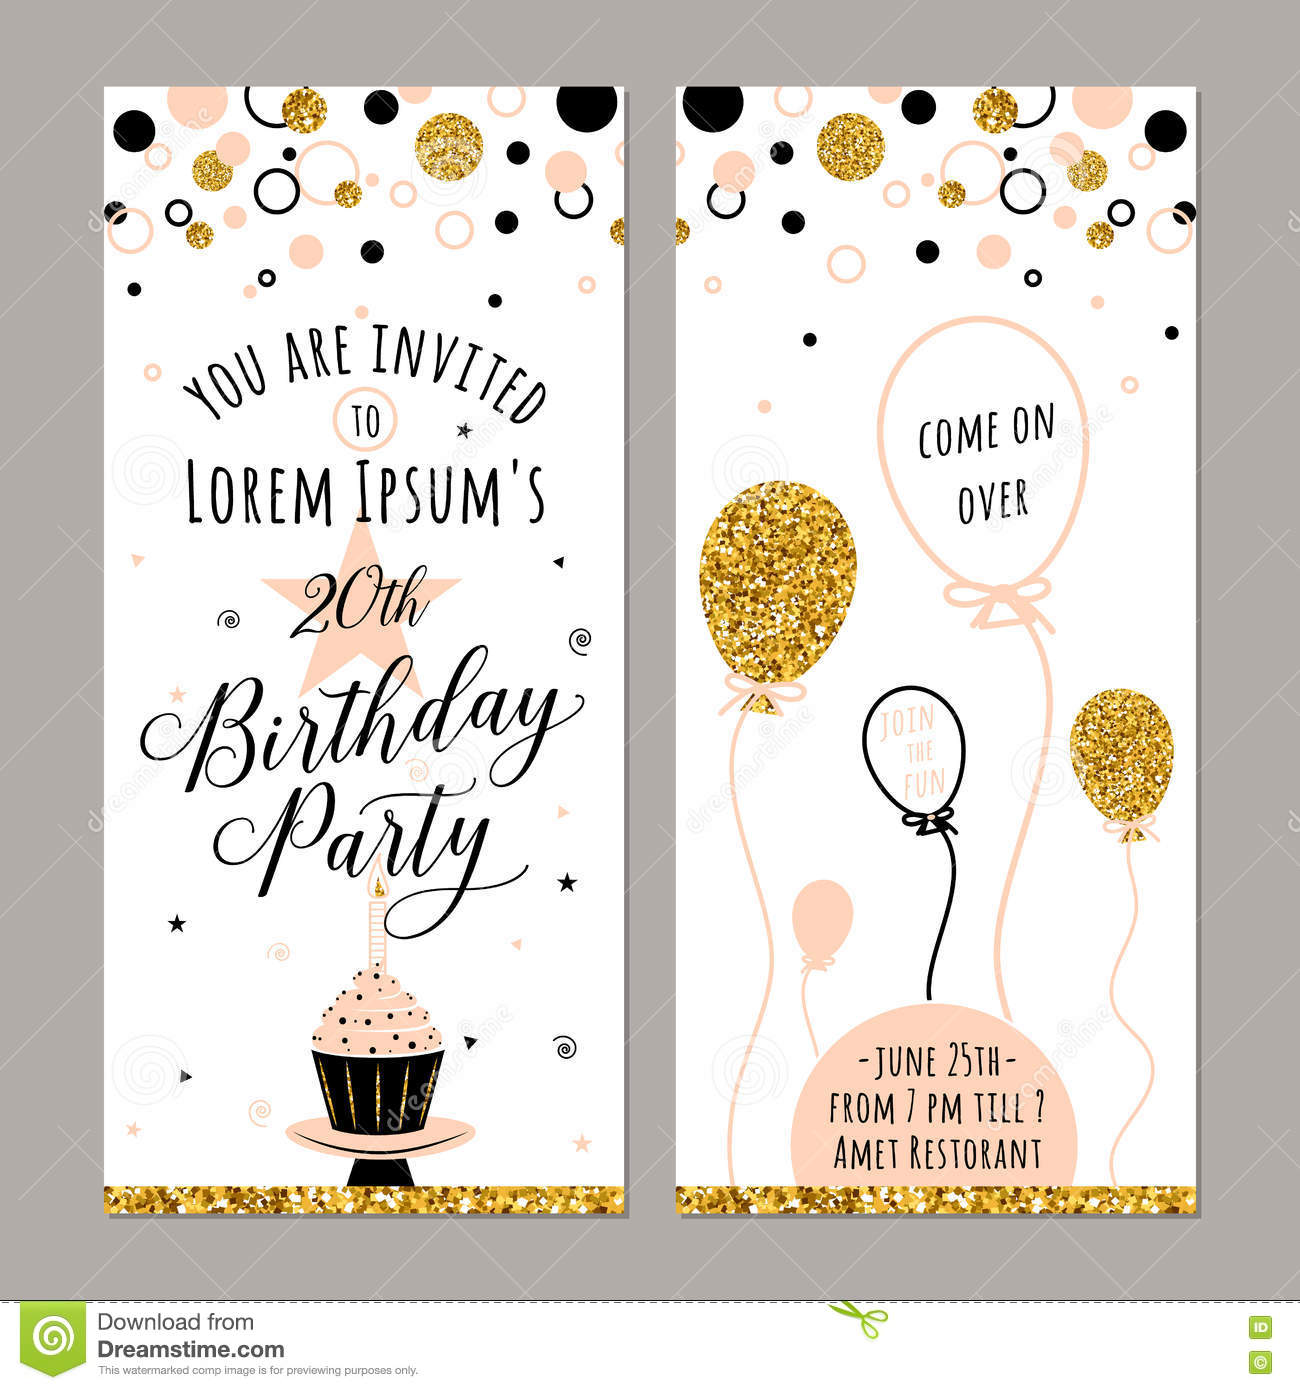 Vector Illustration Of Birthday Invitation Face And Back Sides